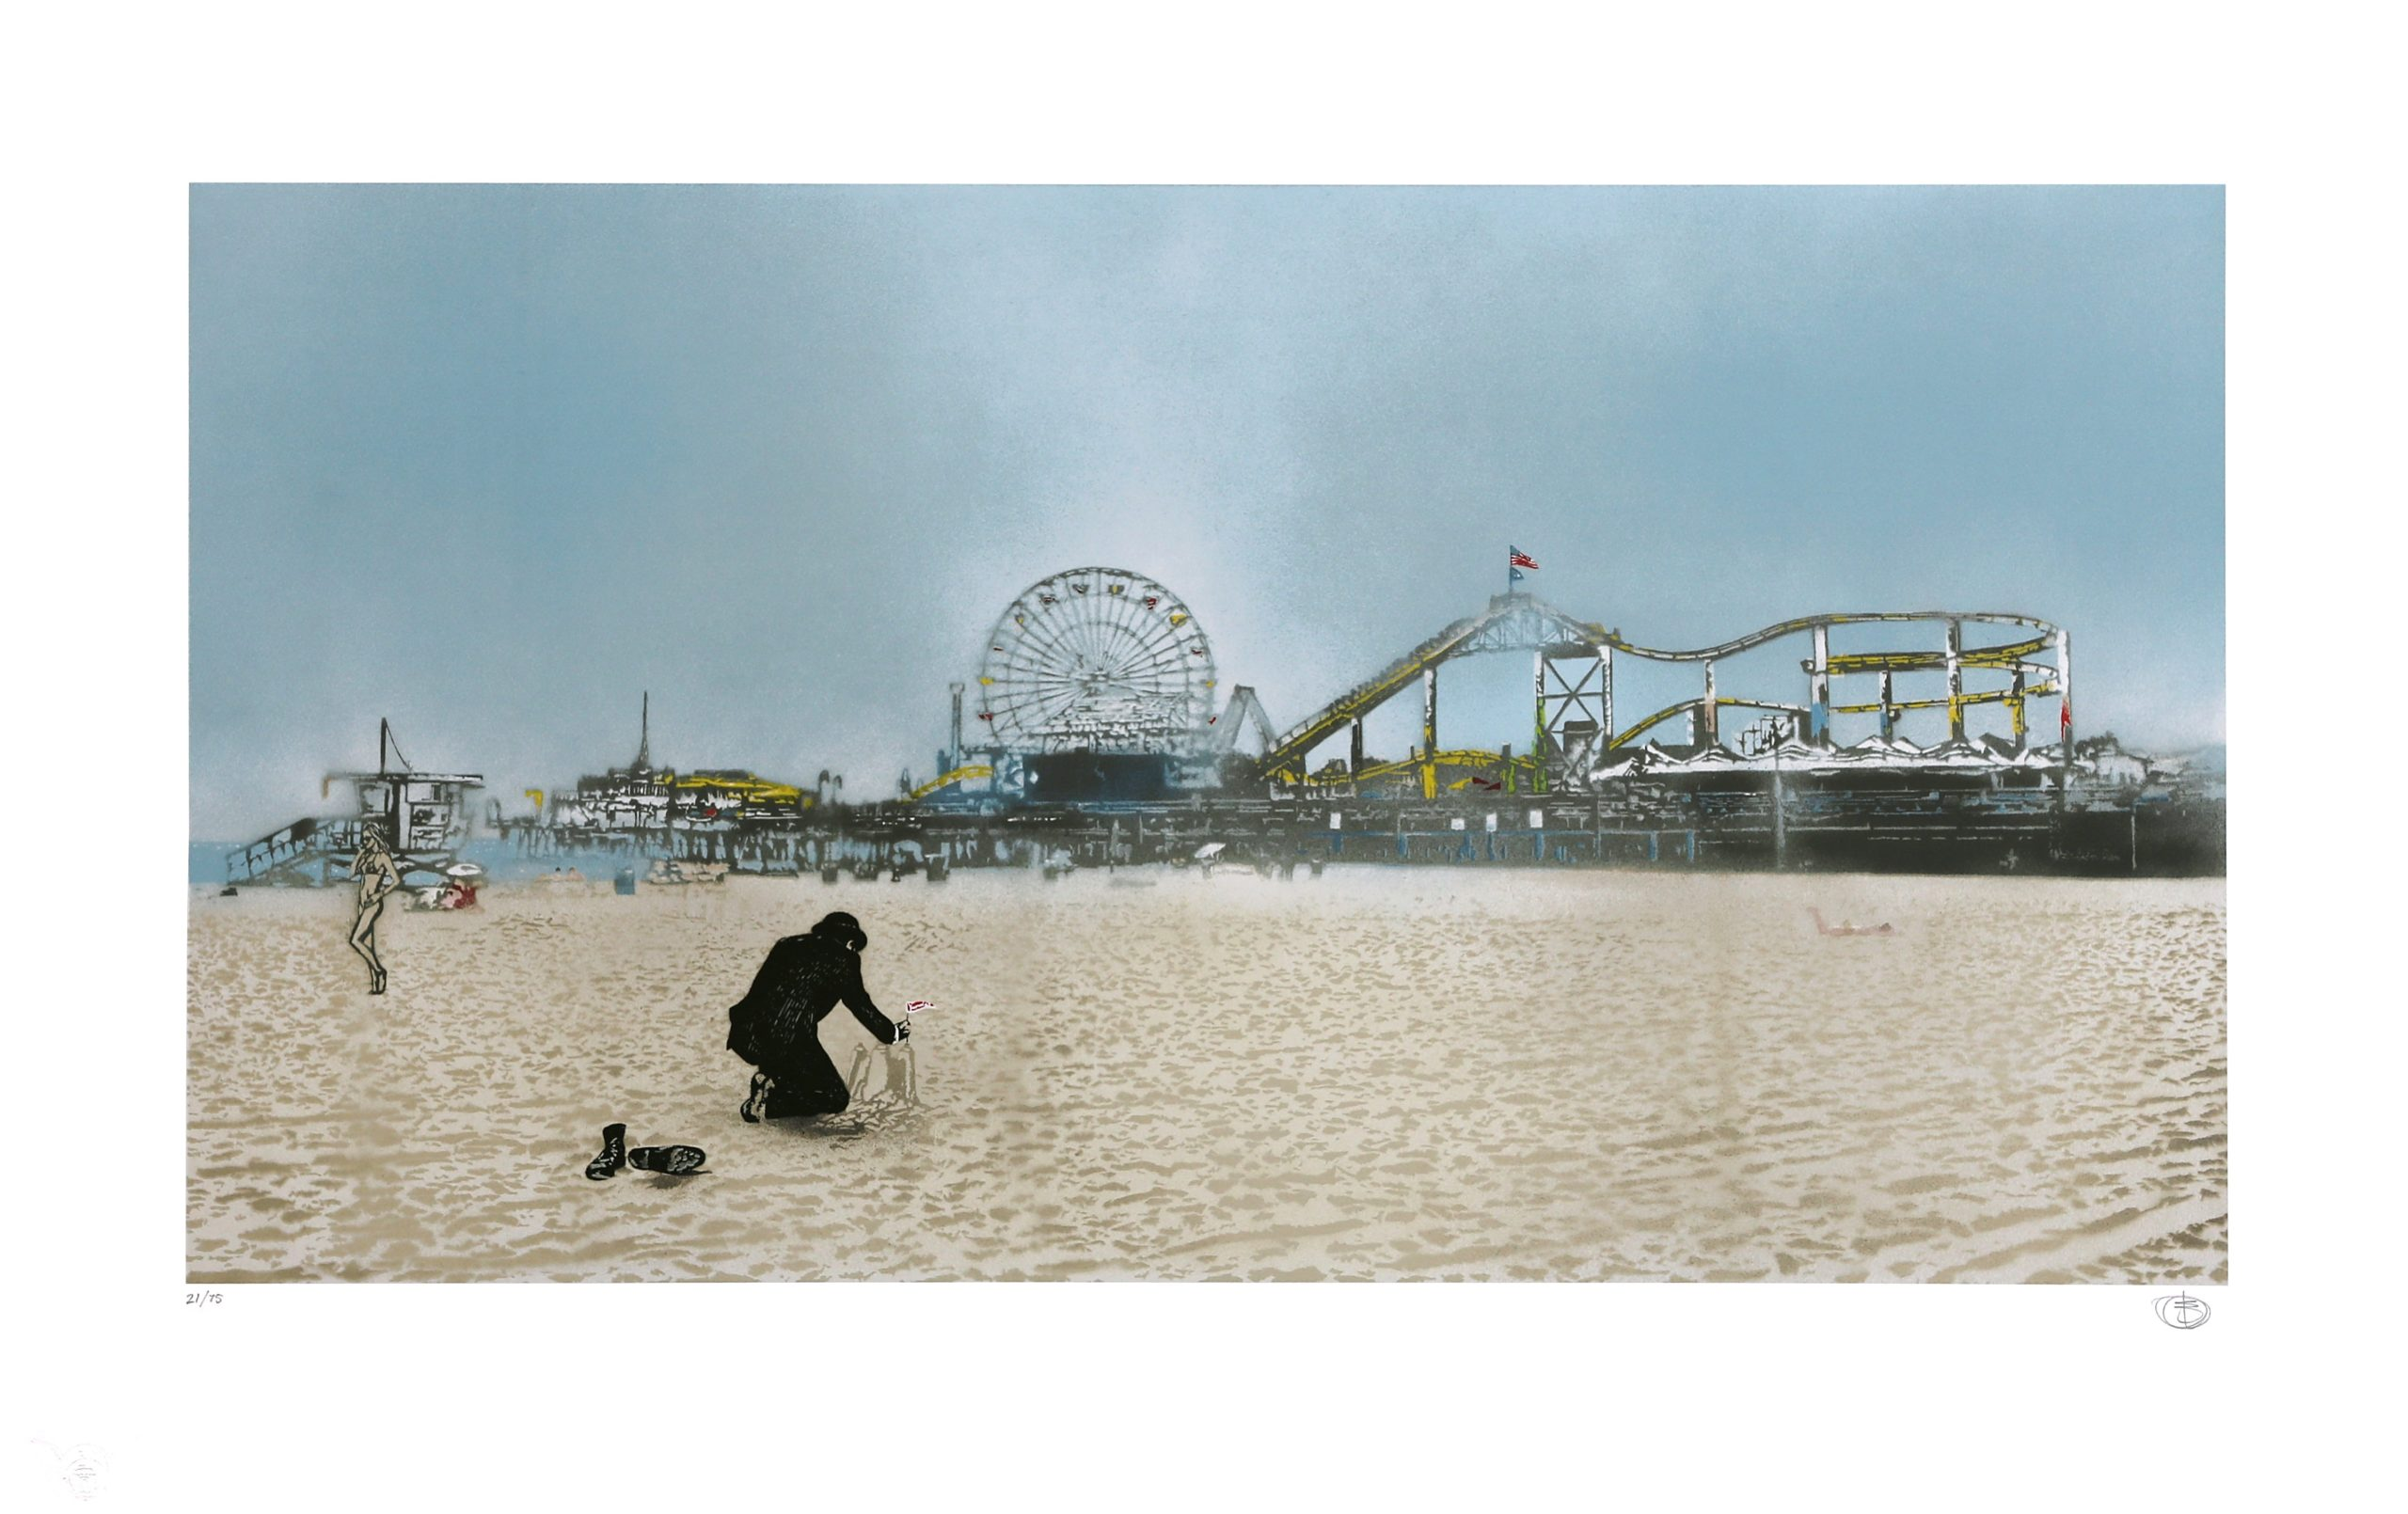 The Morning After: Santa Monica by Nick Walker